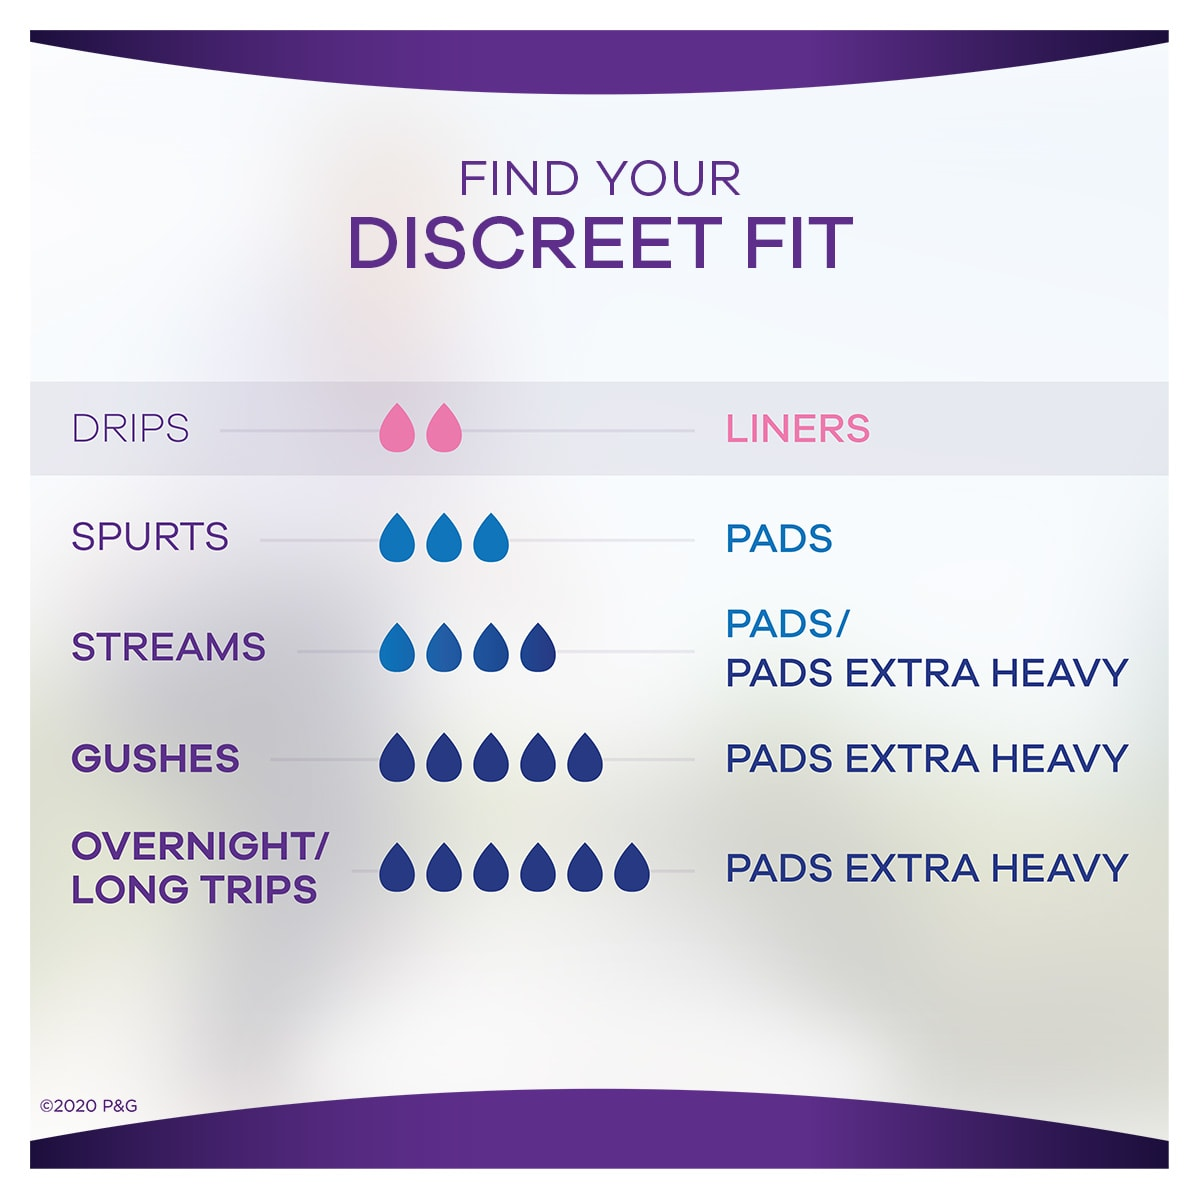 Always_Discreet Find your Discreet fit